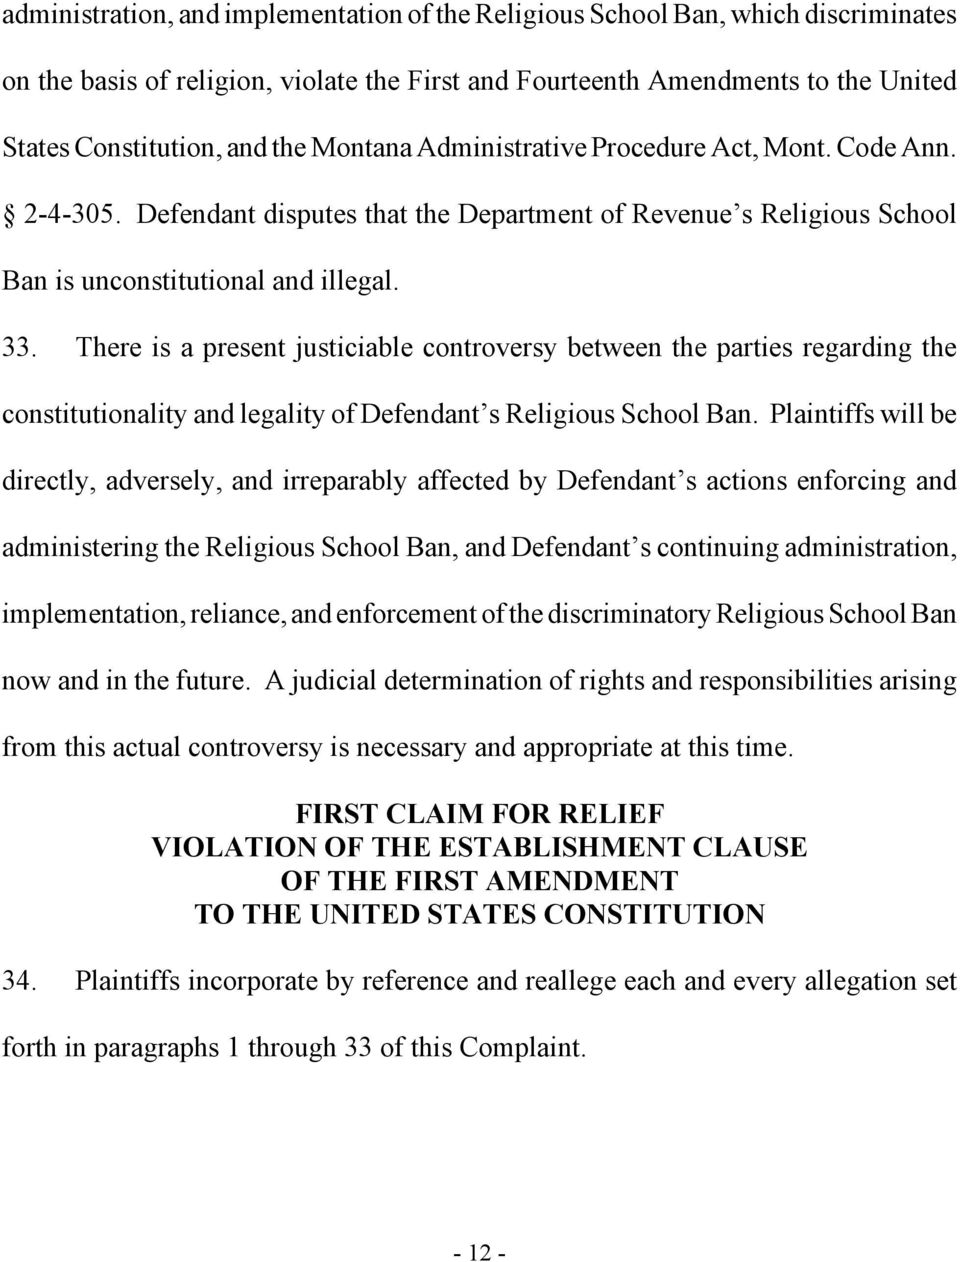 There is a present justiciable controversy between the parties regarding the constitutionality and legality of Defendant s Religious School Ban.